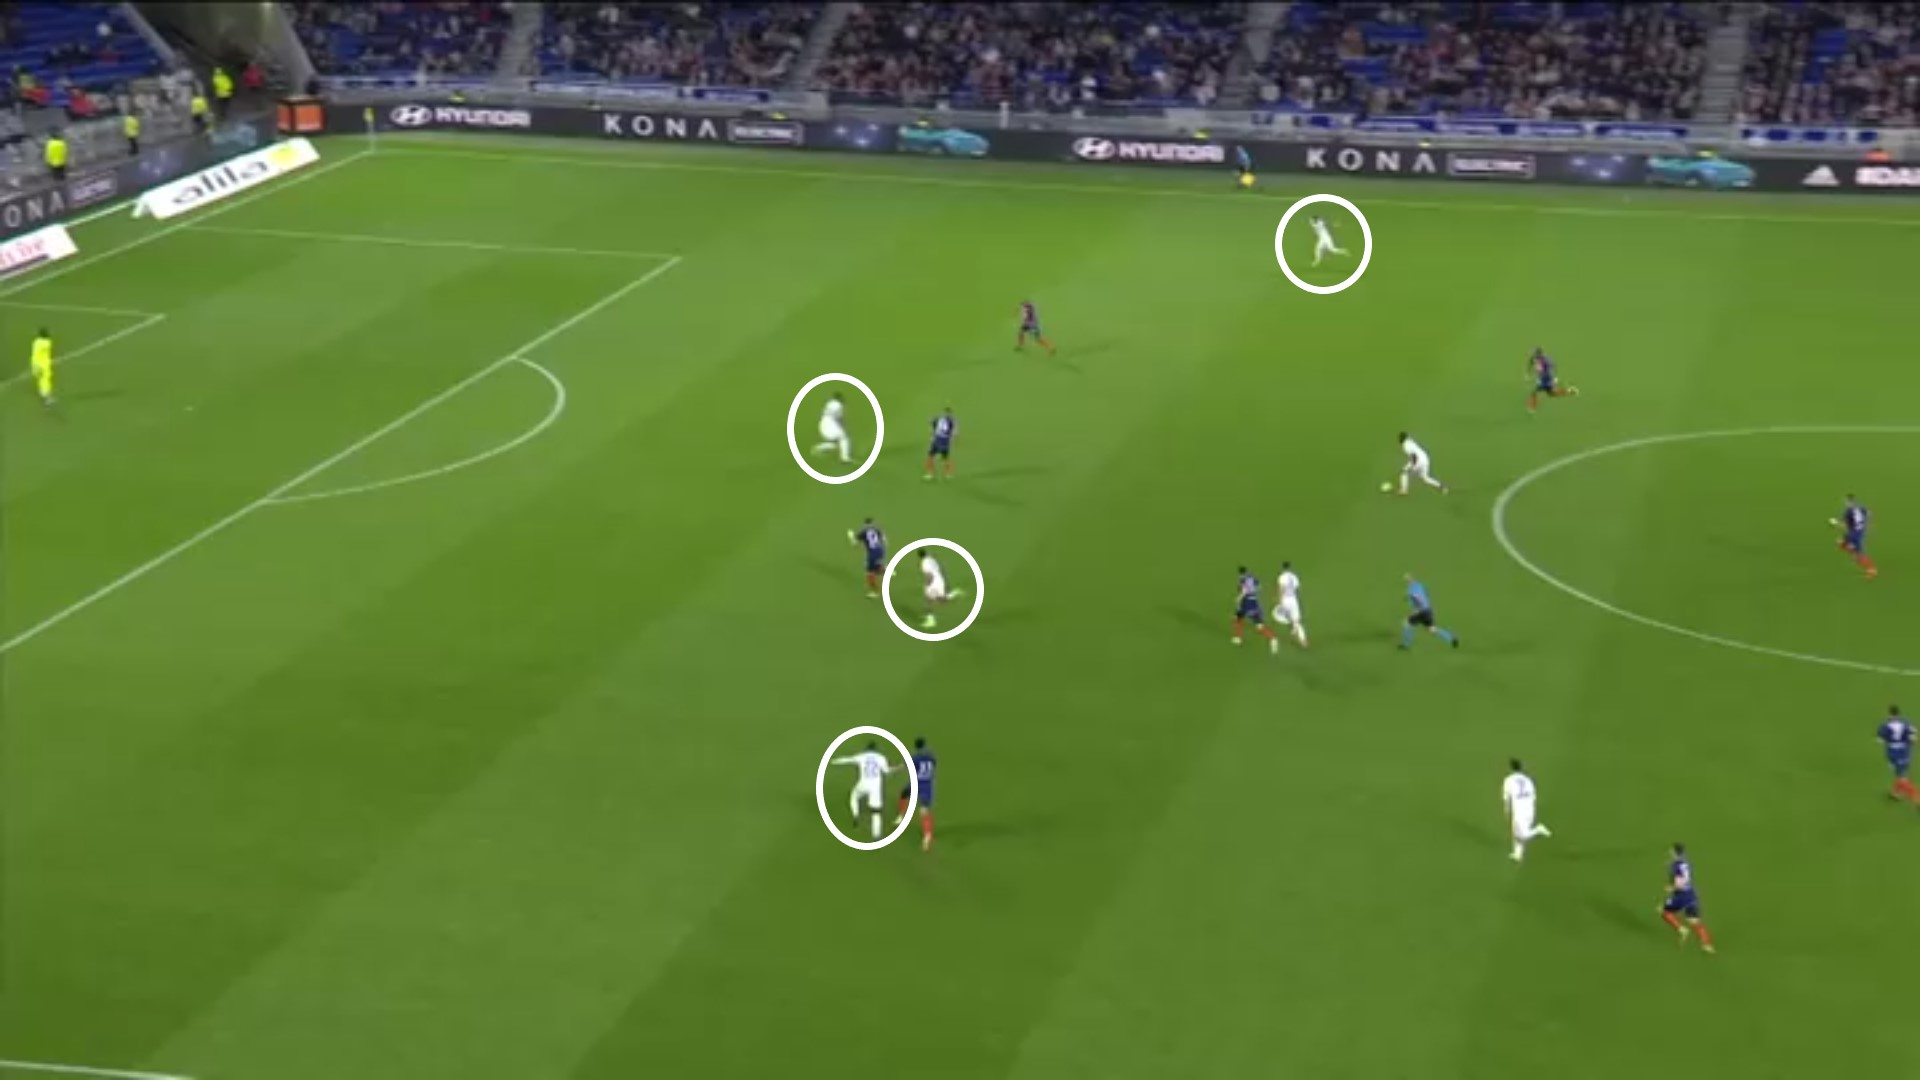 Ligue 1 2018/19 Tactical Analysis: Lyon vs Caen